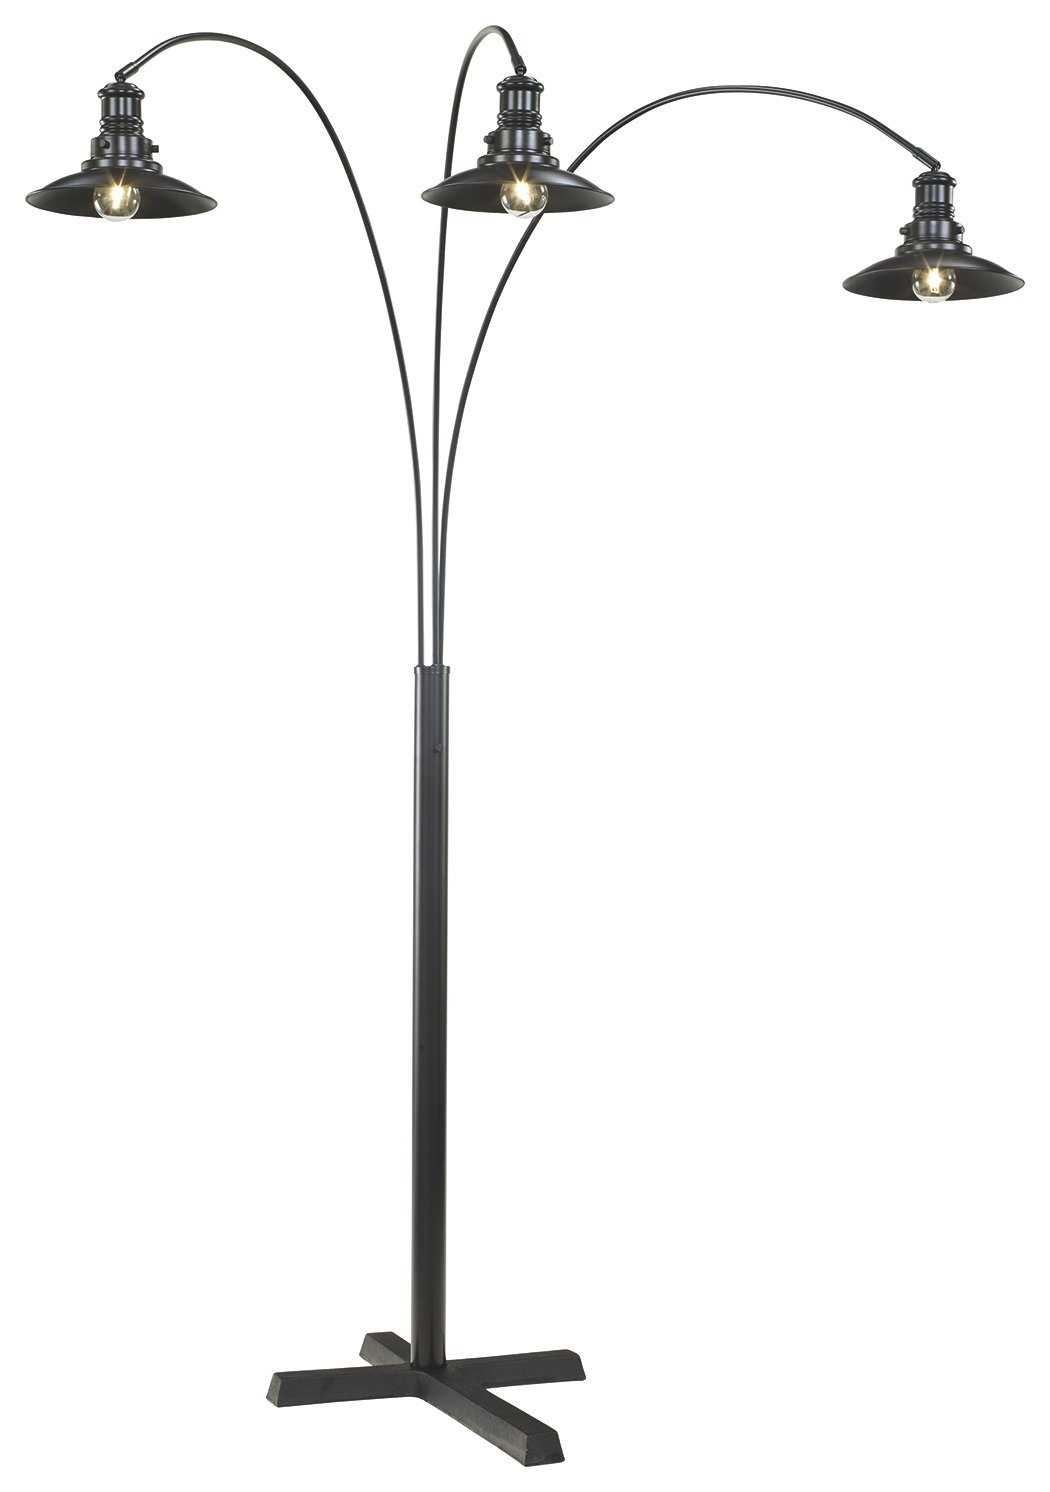 Signature Design by Ashley L725059 Metal Arc lamp, Black